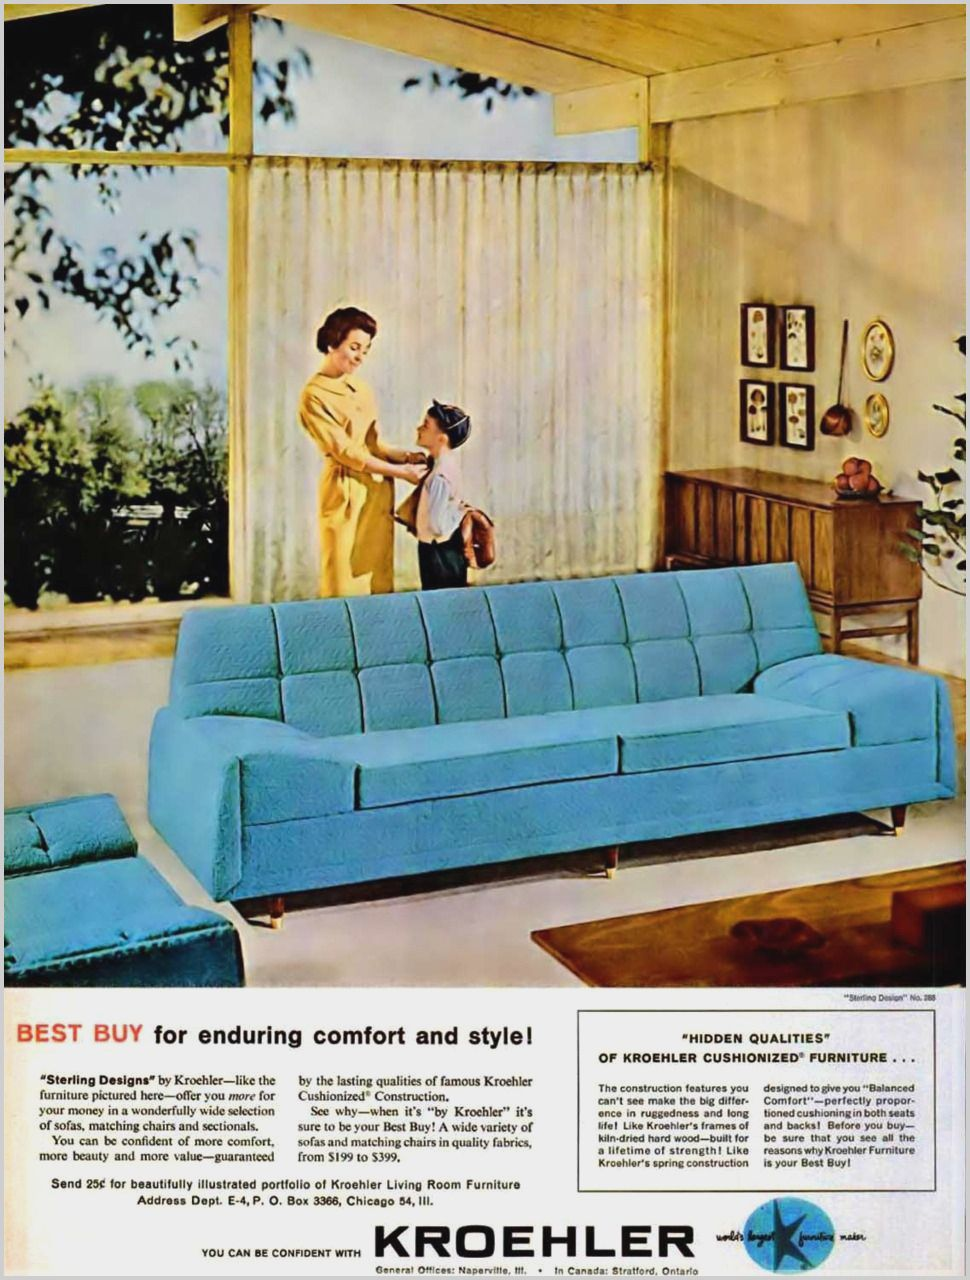 1960s Style Living Room Furniture Living Room Chairs Living Room Furniture Furniture 1960s living room furniture